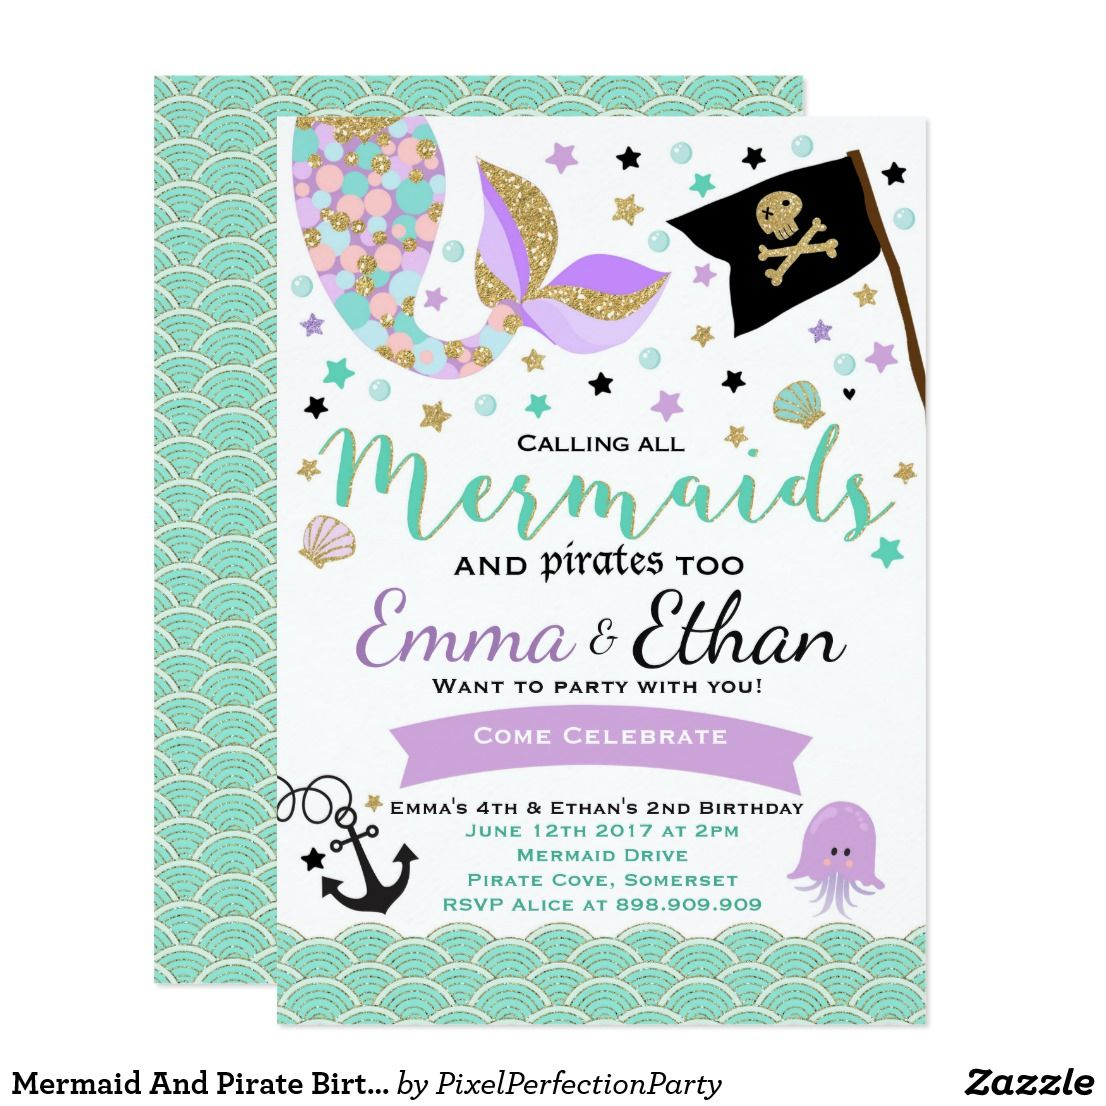 Mermaid And Pirate Birthday Invitation Joint Party | Pirate birthday ...